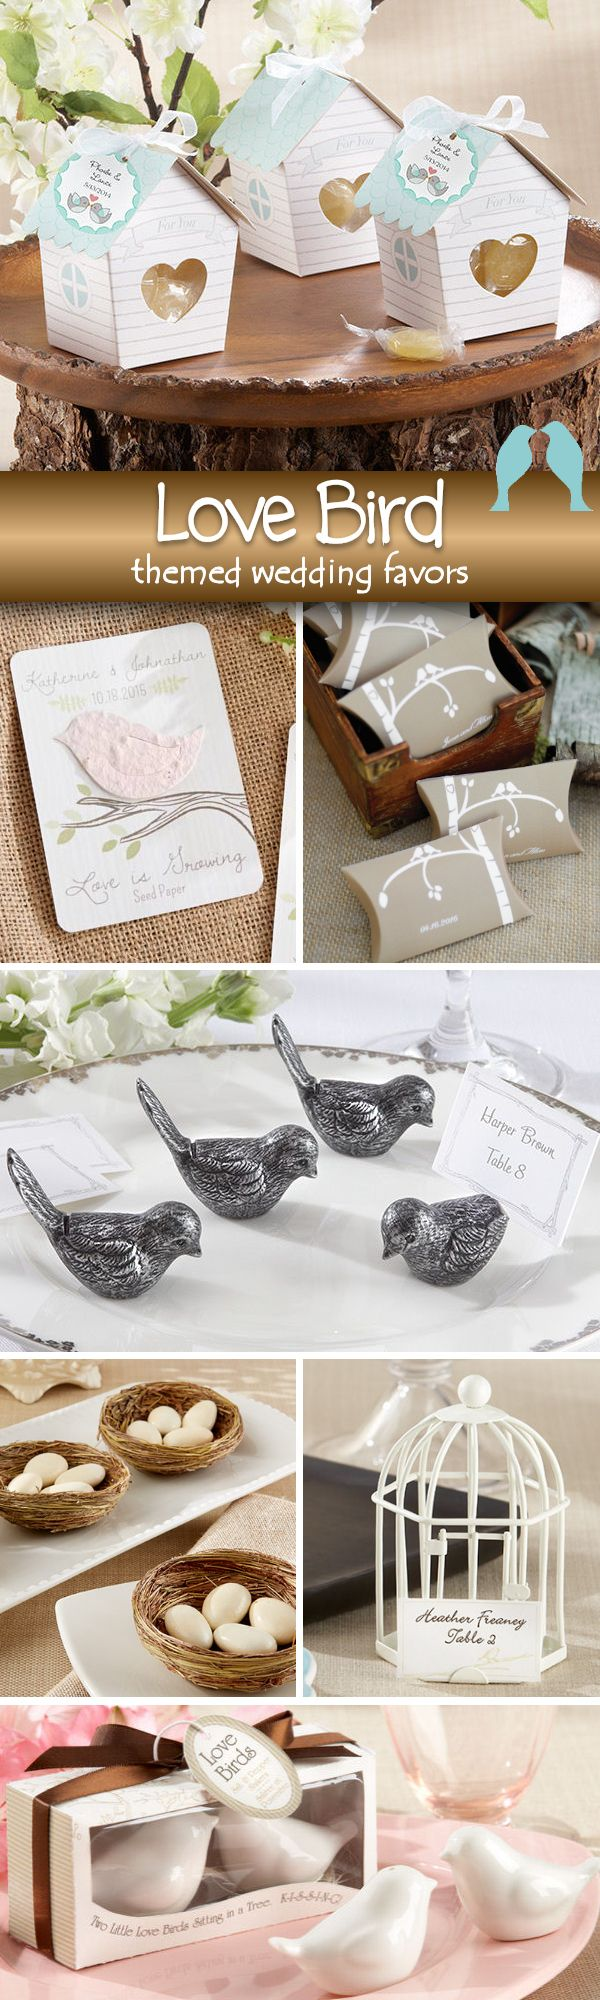 75 Amazing Love Birds Themed Wedding Favors